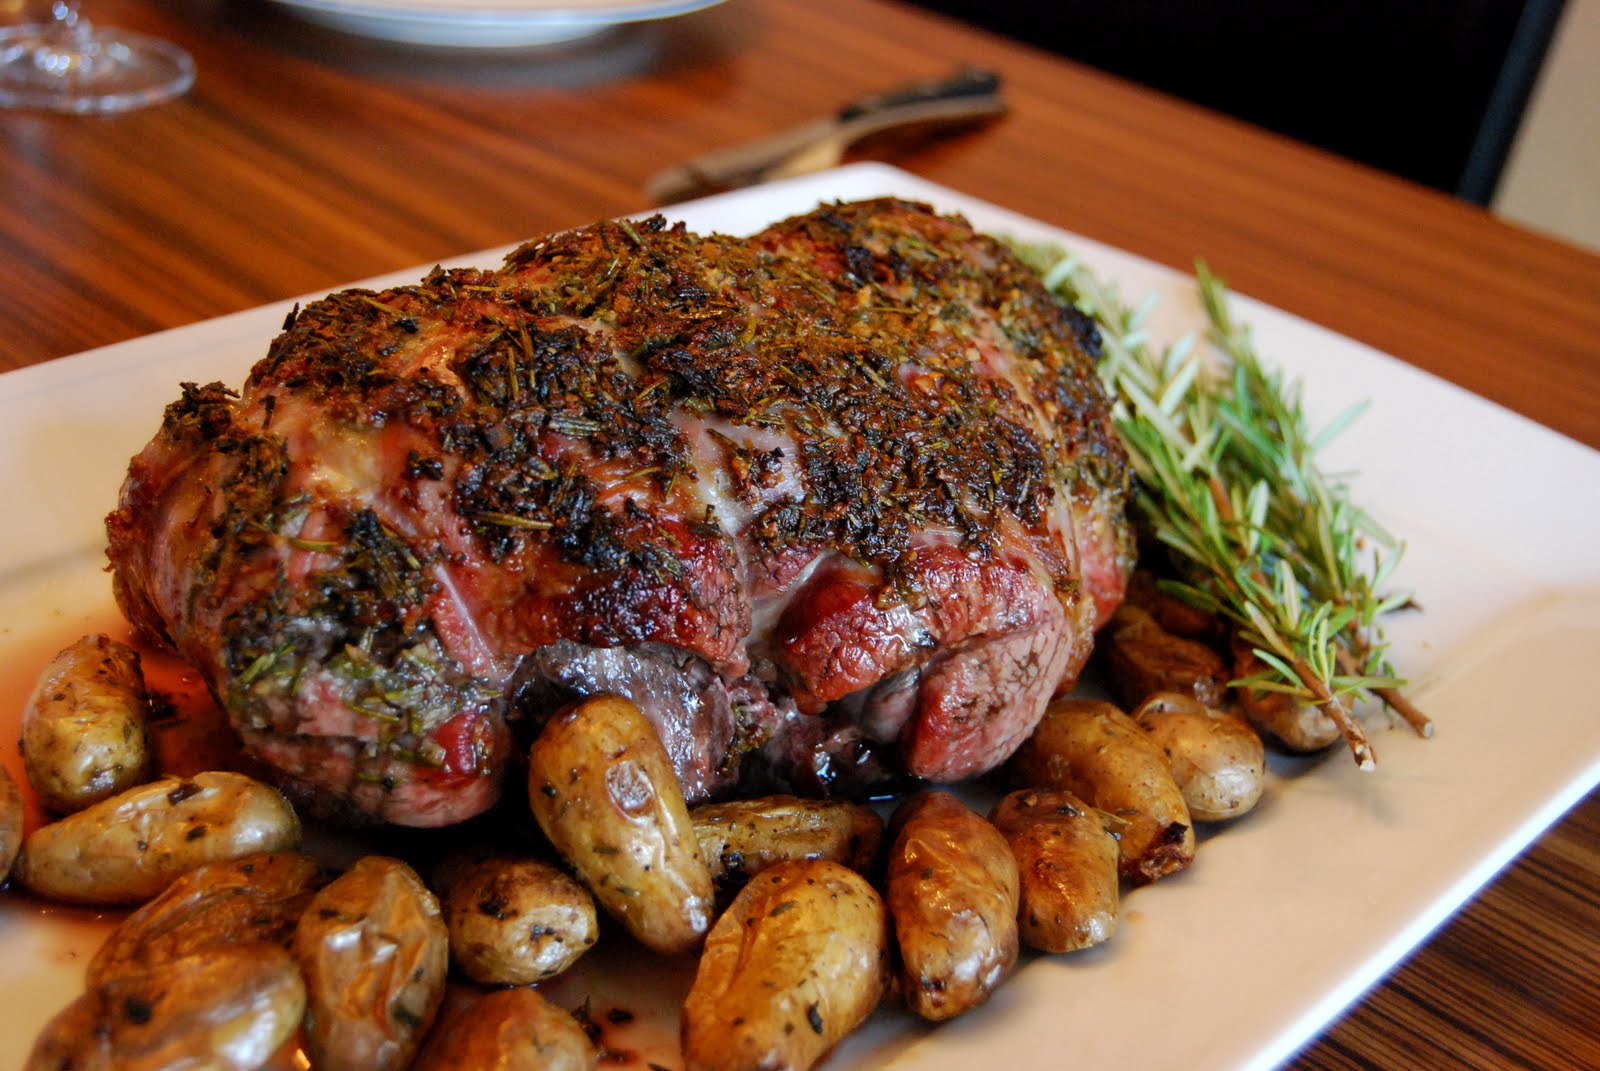 Rosemary and Garlic Roasted Leg of Lamb with Potatoes